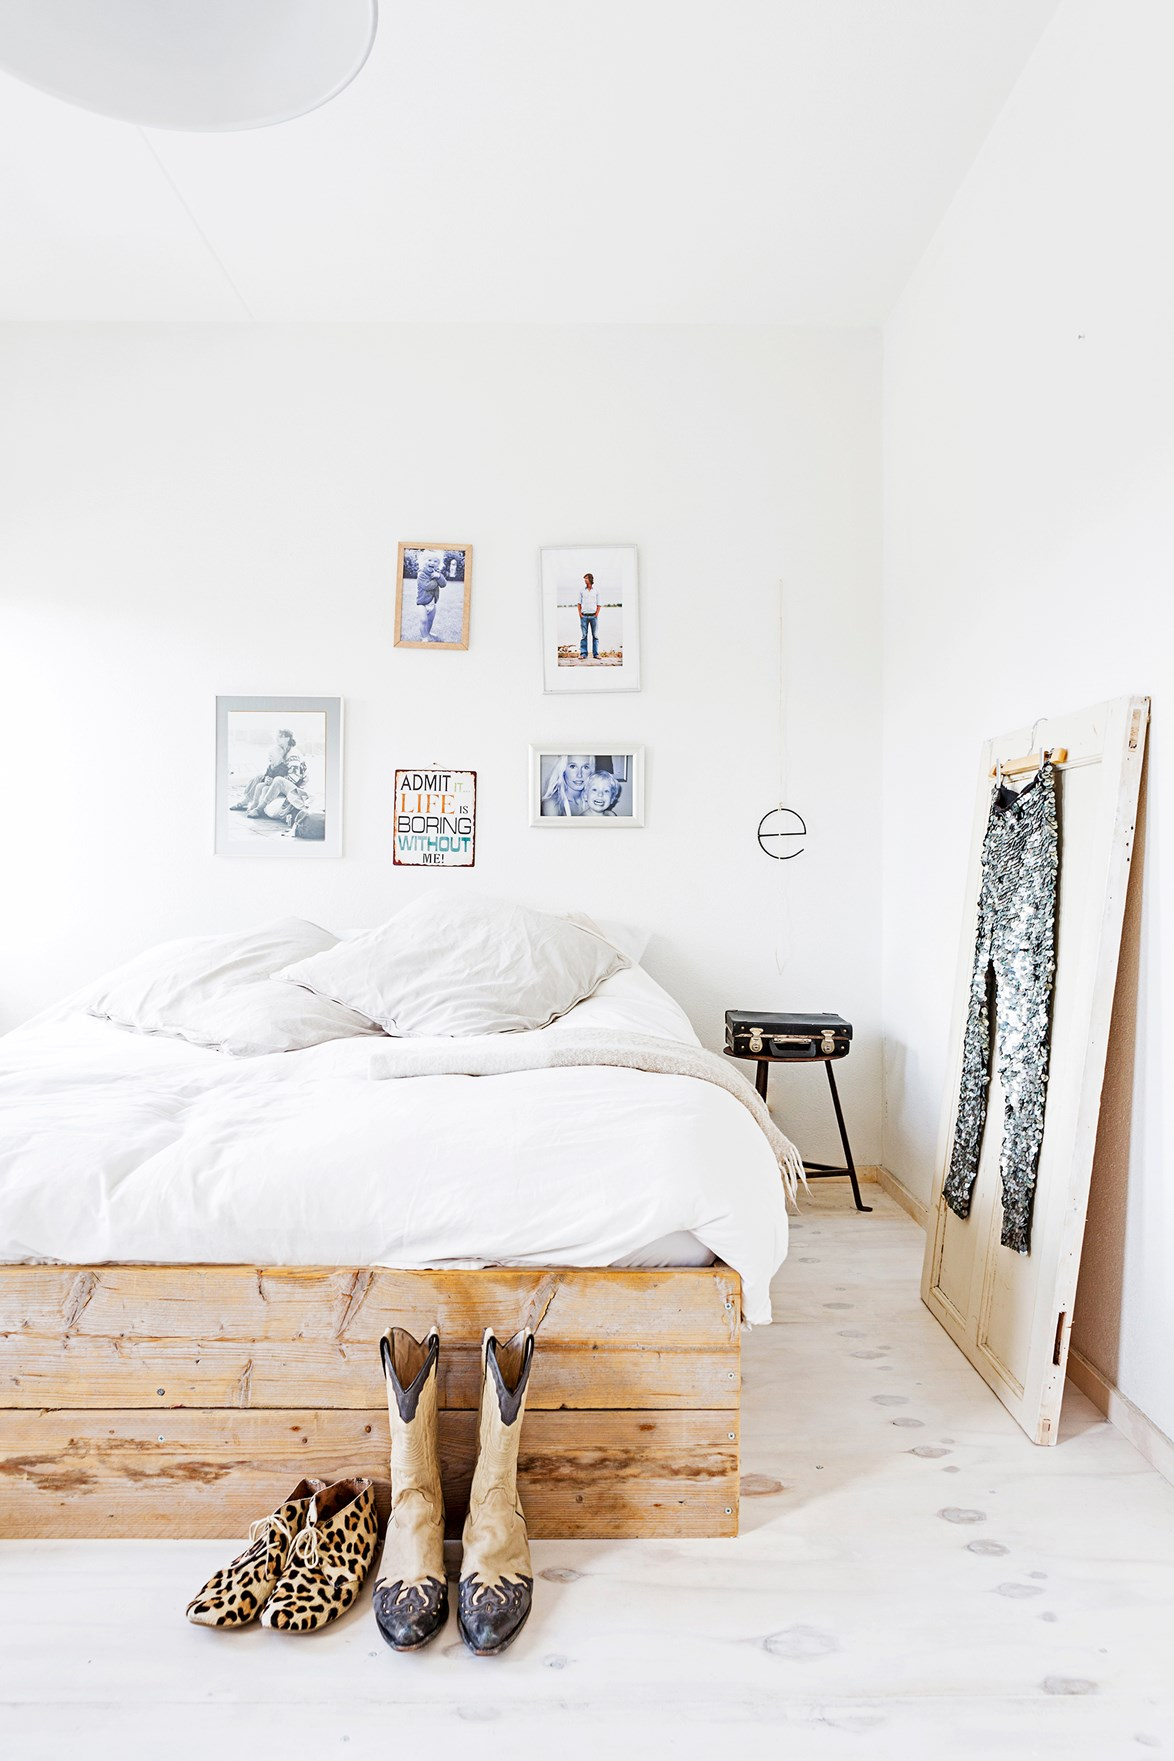 """You know you're into fashion when you use your favourite garments to decorate your home! From  edgy black-and-white fashion pics to vintage cowboy boots and sparkly jeans, every room in this [modern industrial home](https://www.homestolove.com.au/gallery-mariekes-modern-industrial-home-2244